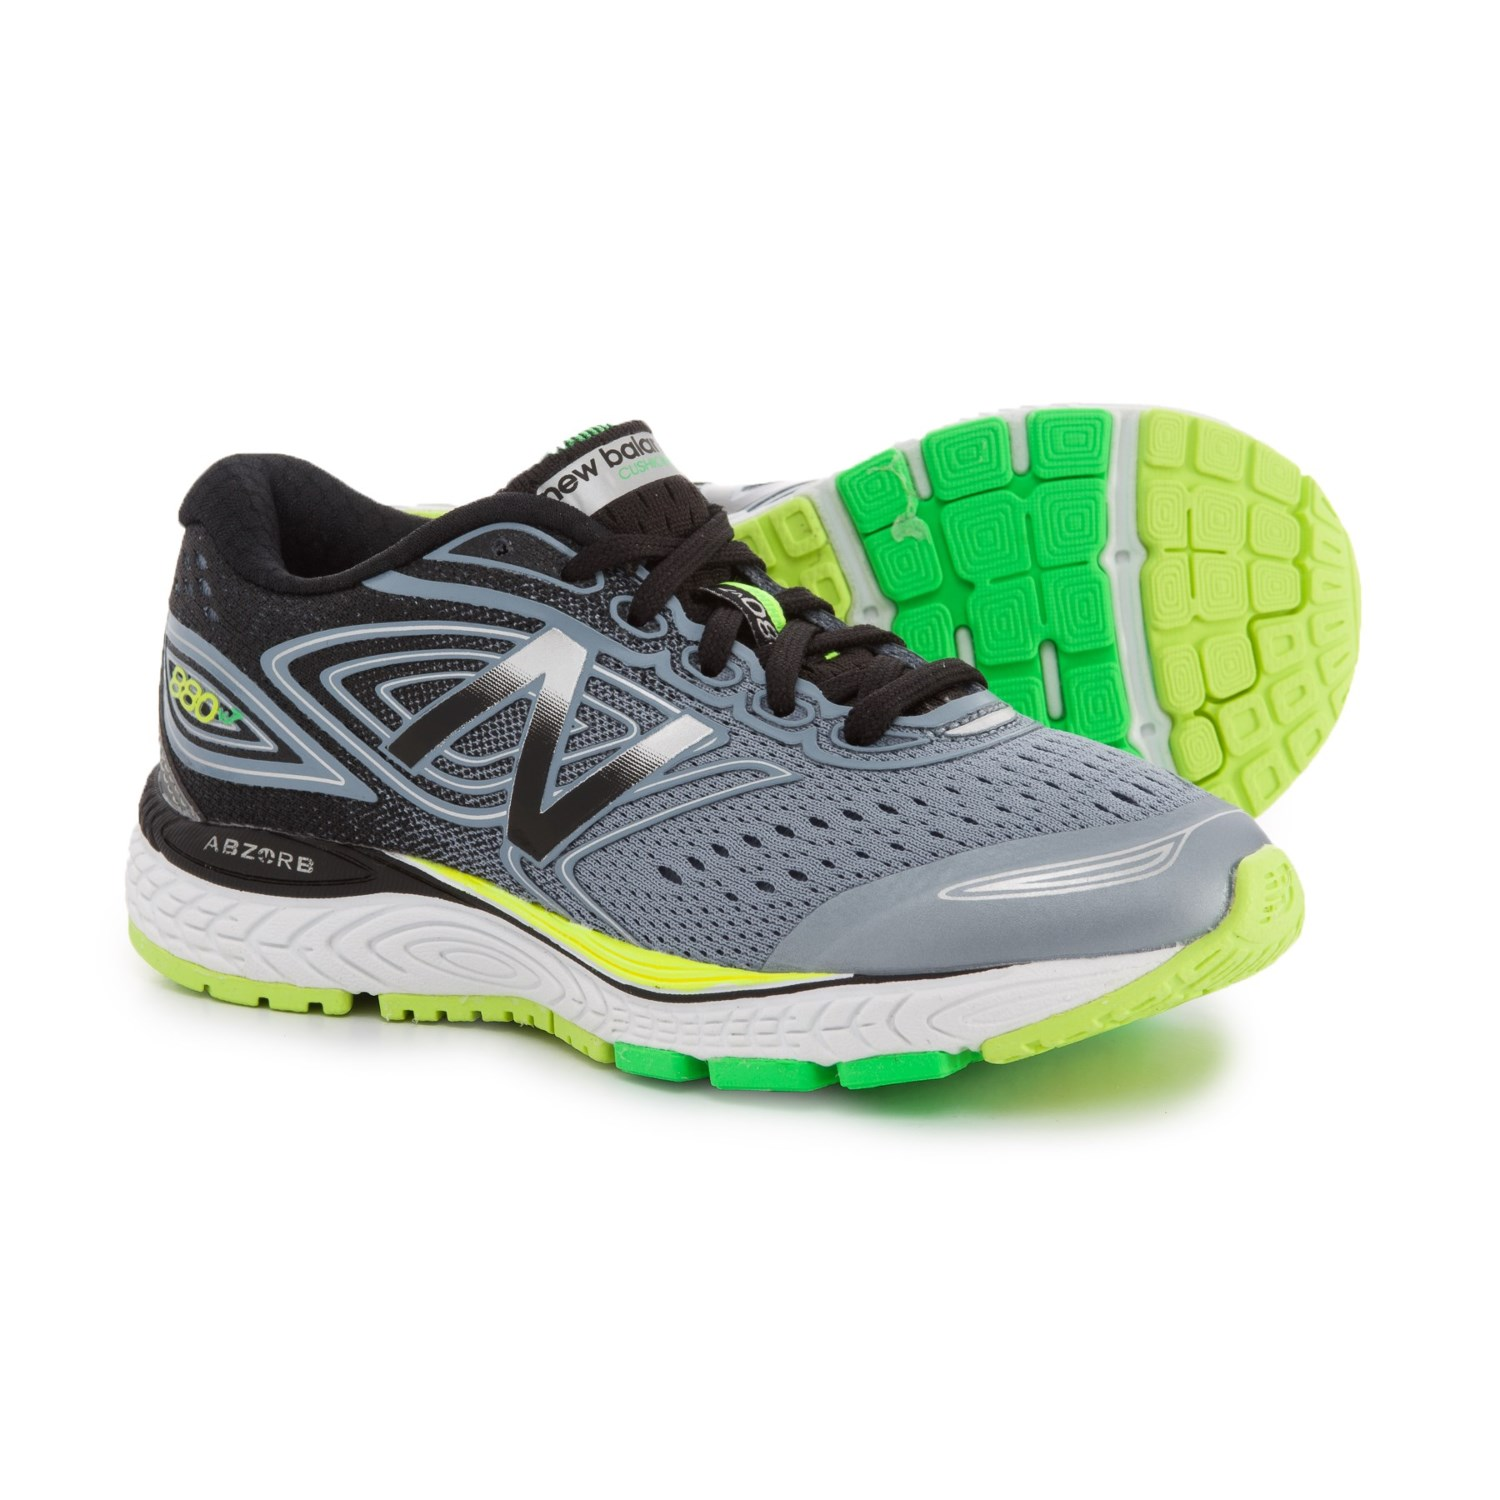 efbe5149 New Balance 880 V7 Running Shoes (For Boys)